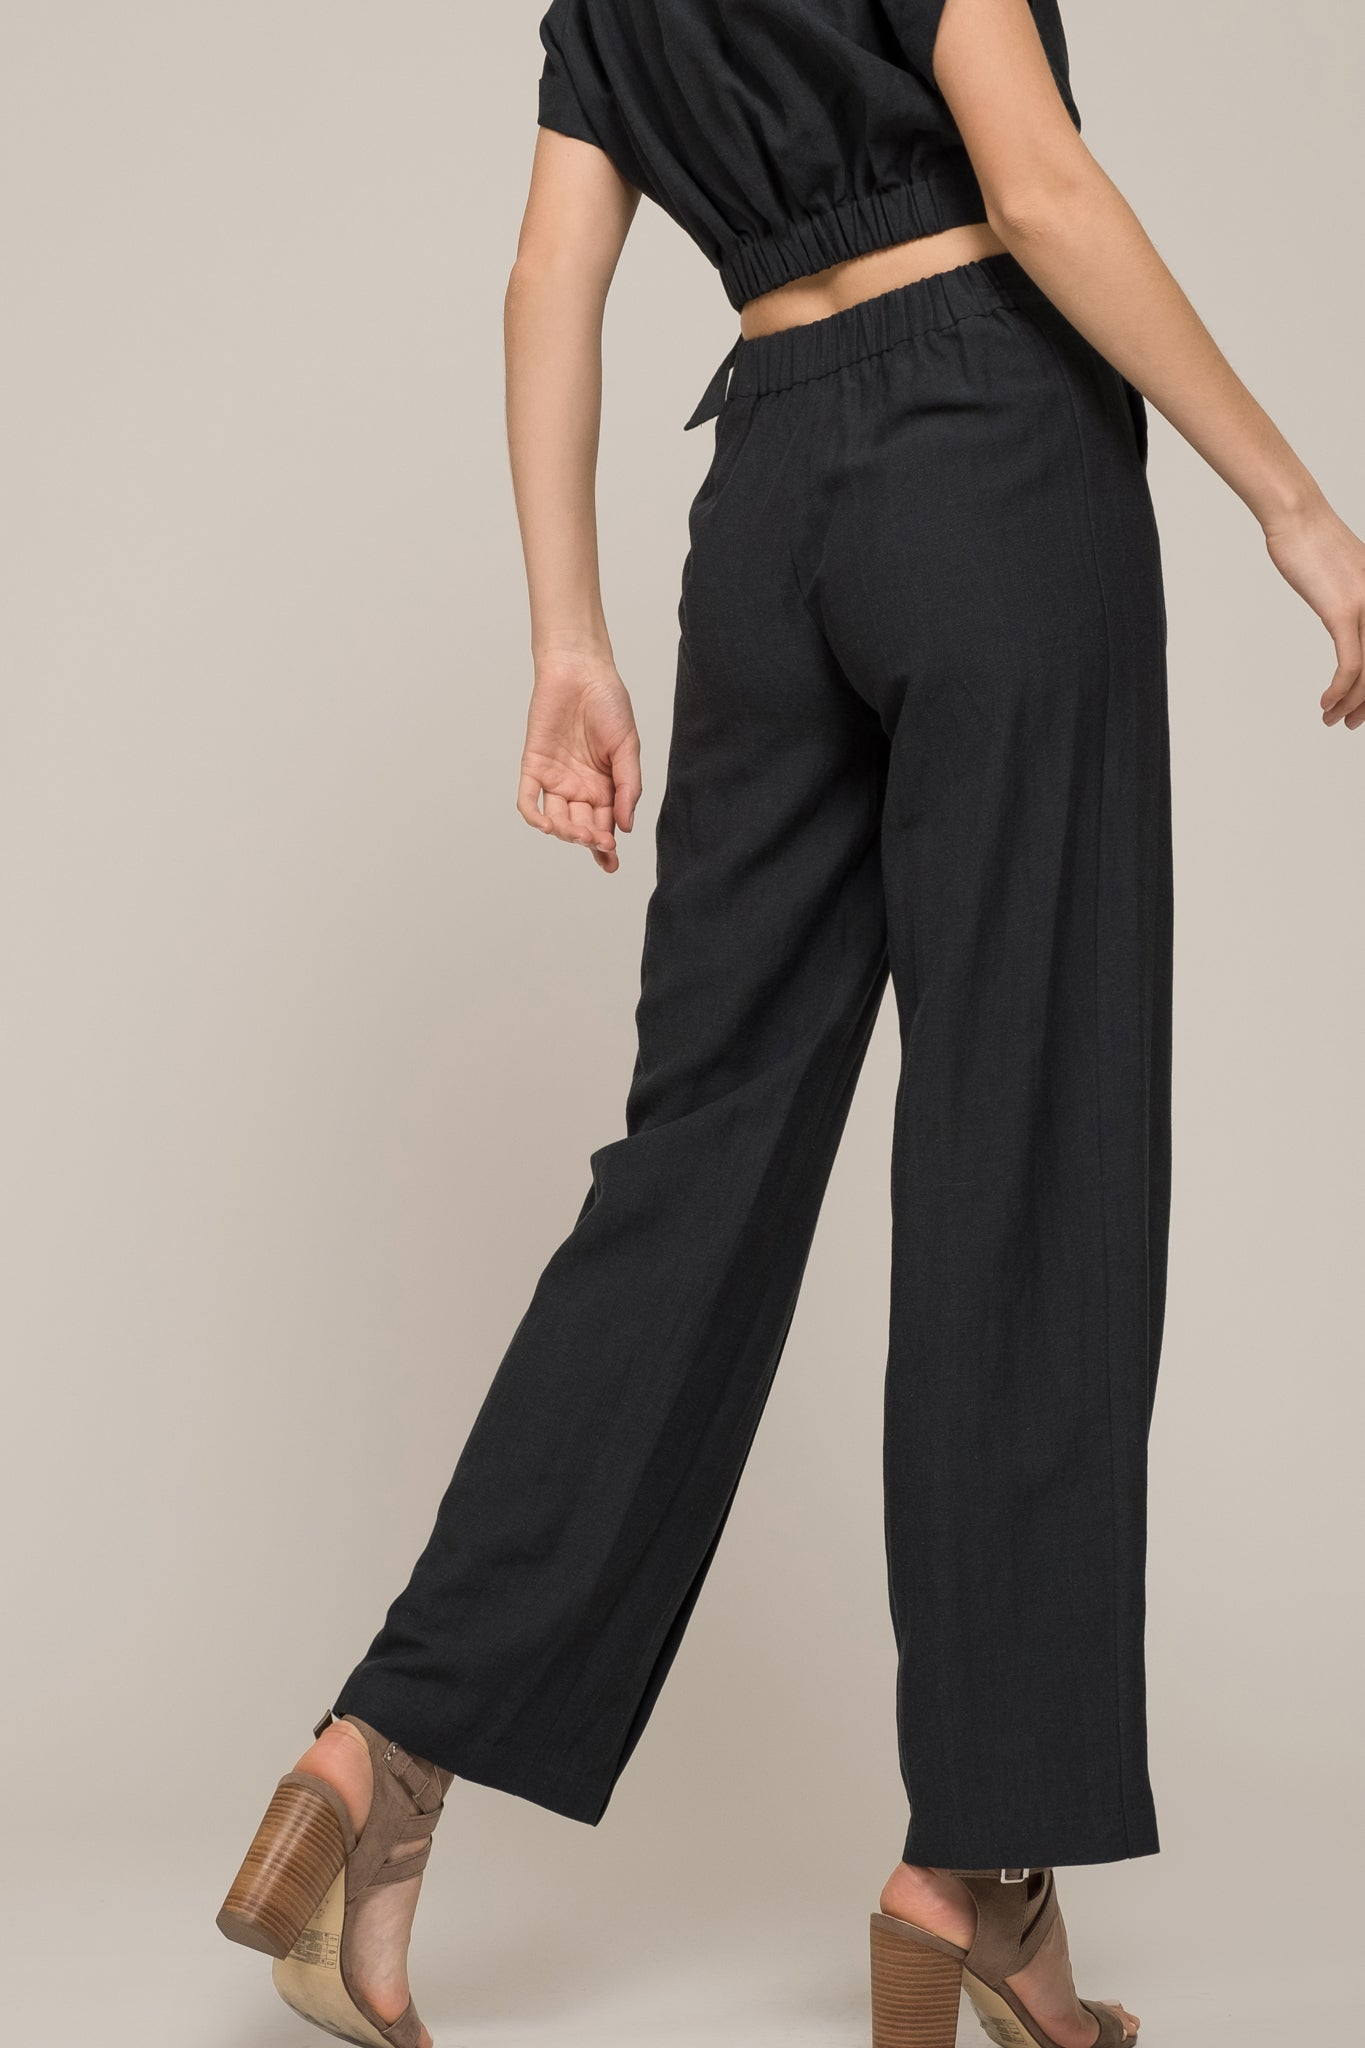 STRAIGHT LEG PANT WITH POCKETS